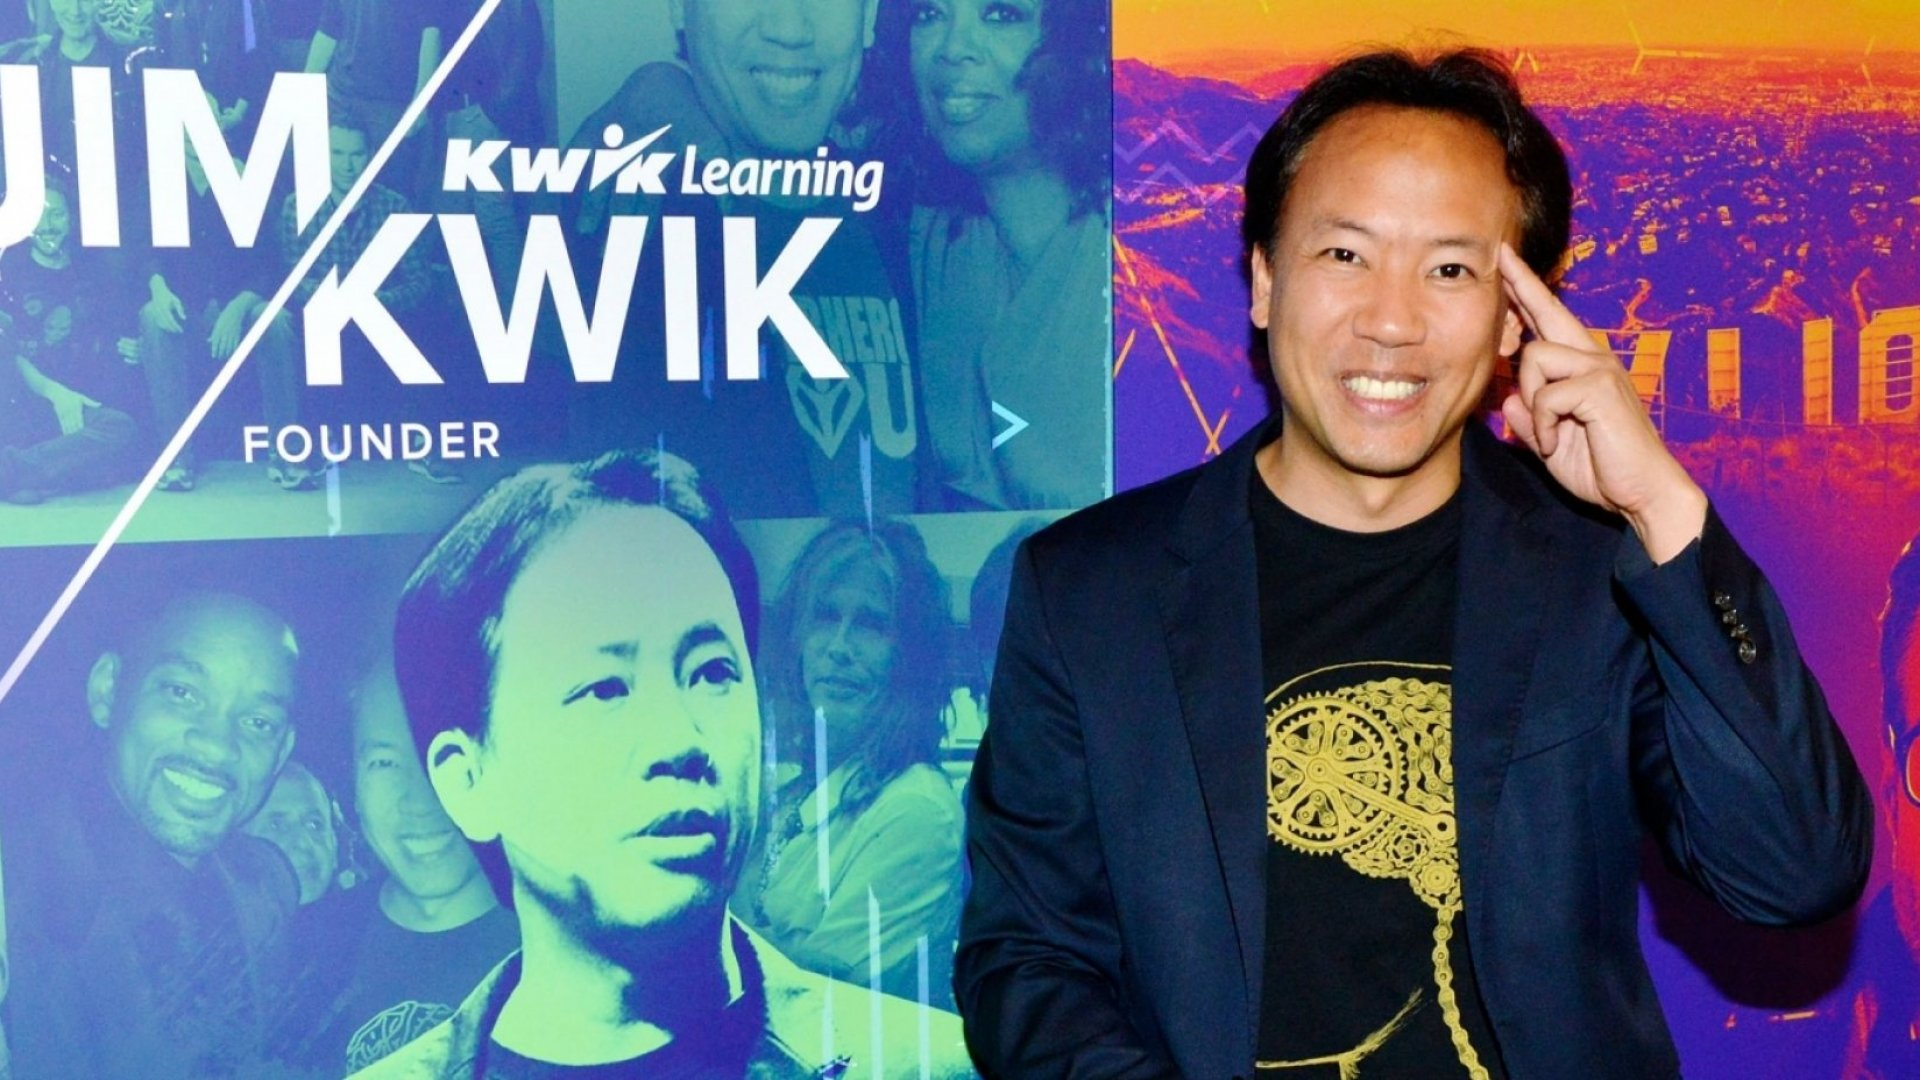 Author and brain expert Jim Kwik